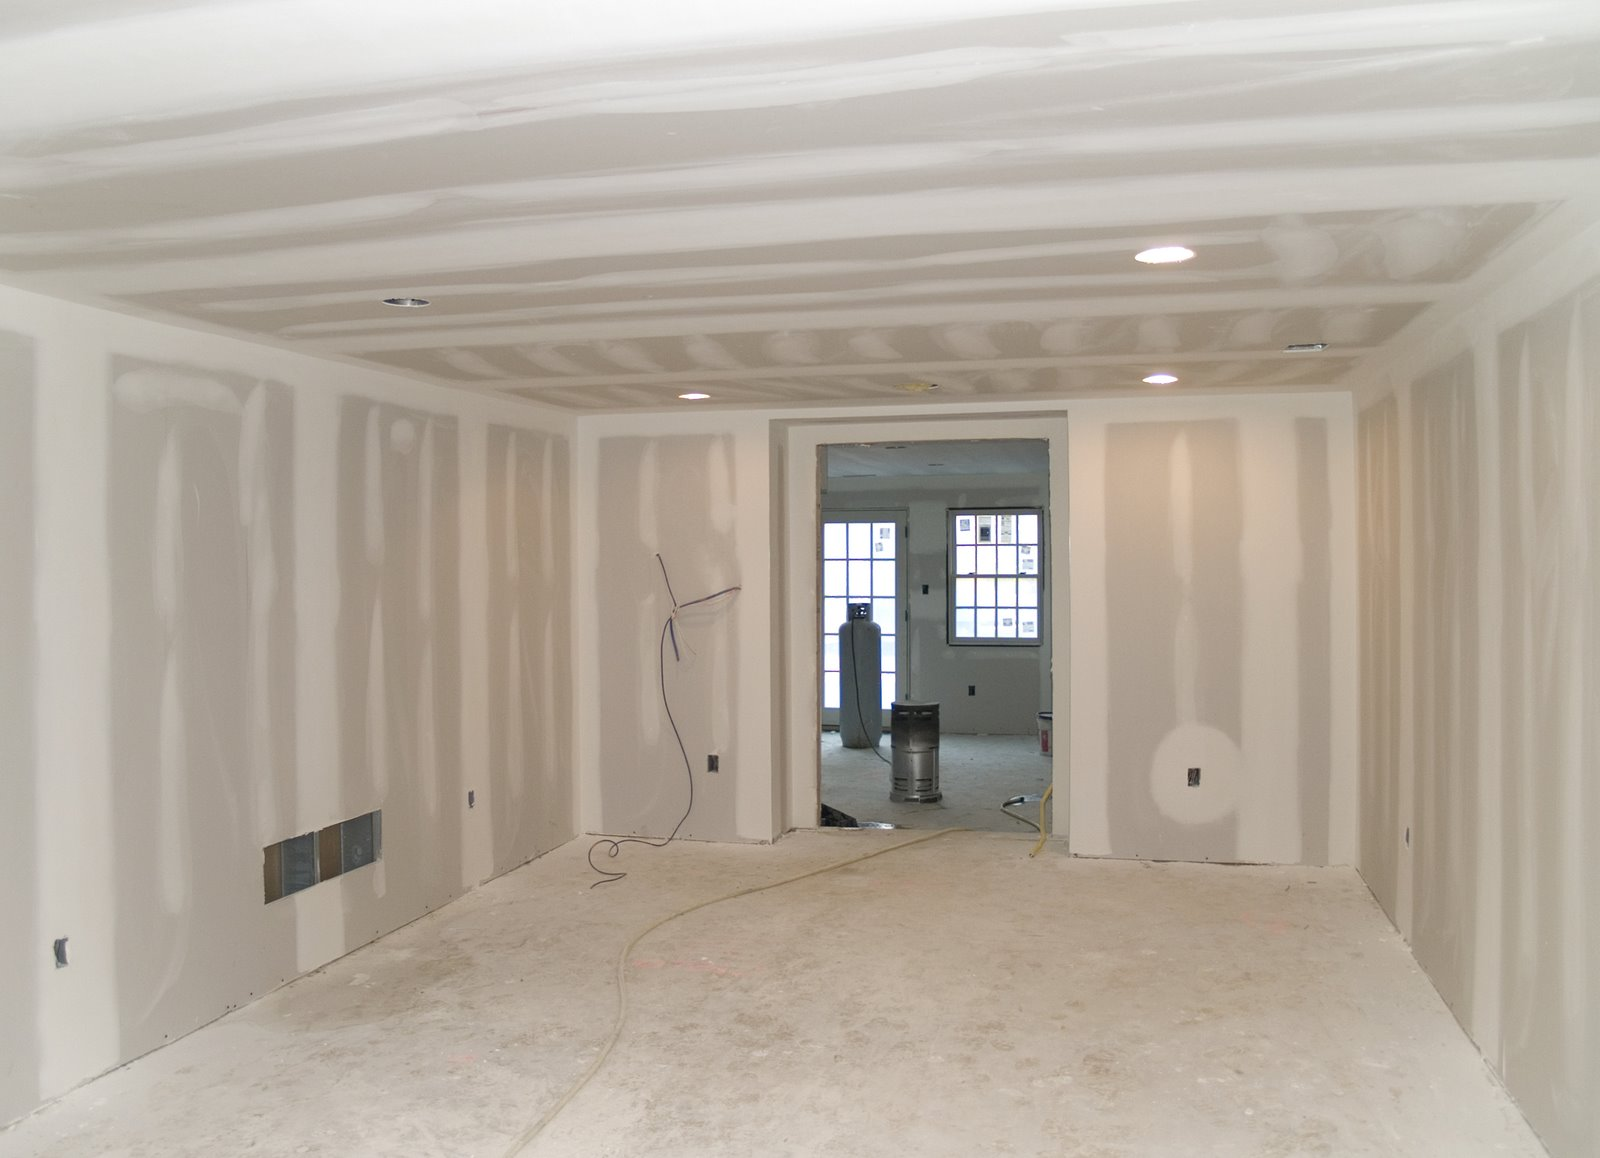 Drywall Whole House Renovation Amp Addition In Wayne Pa